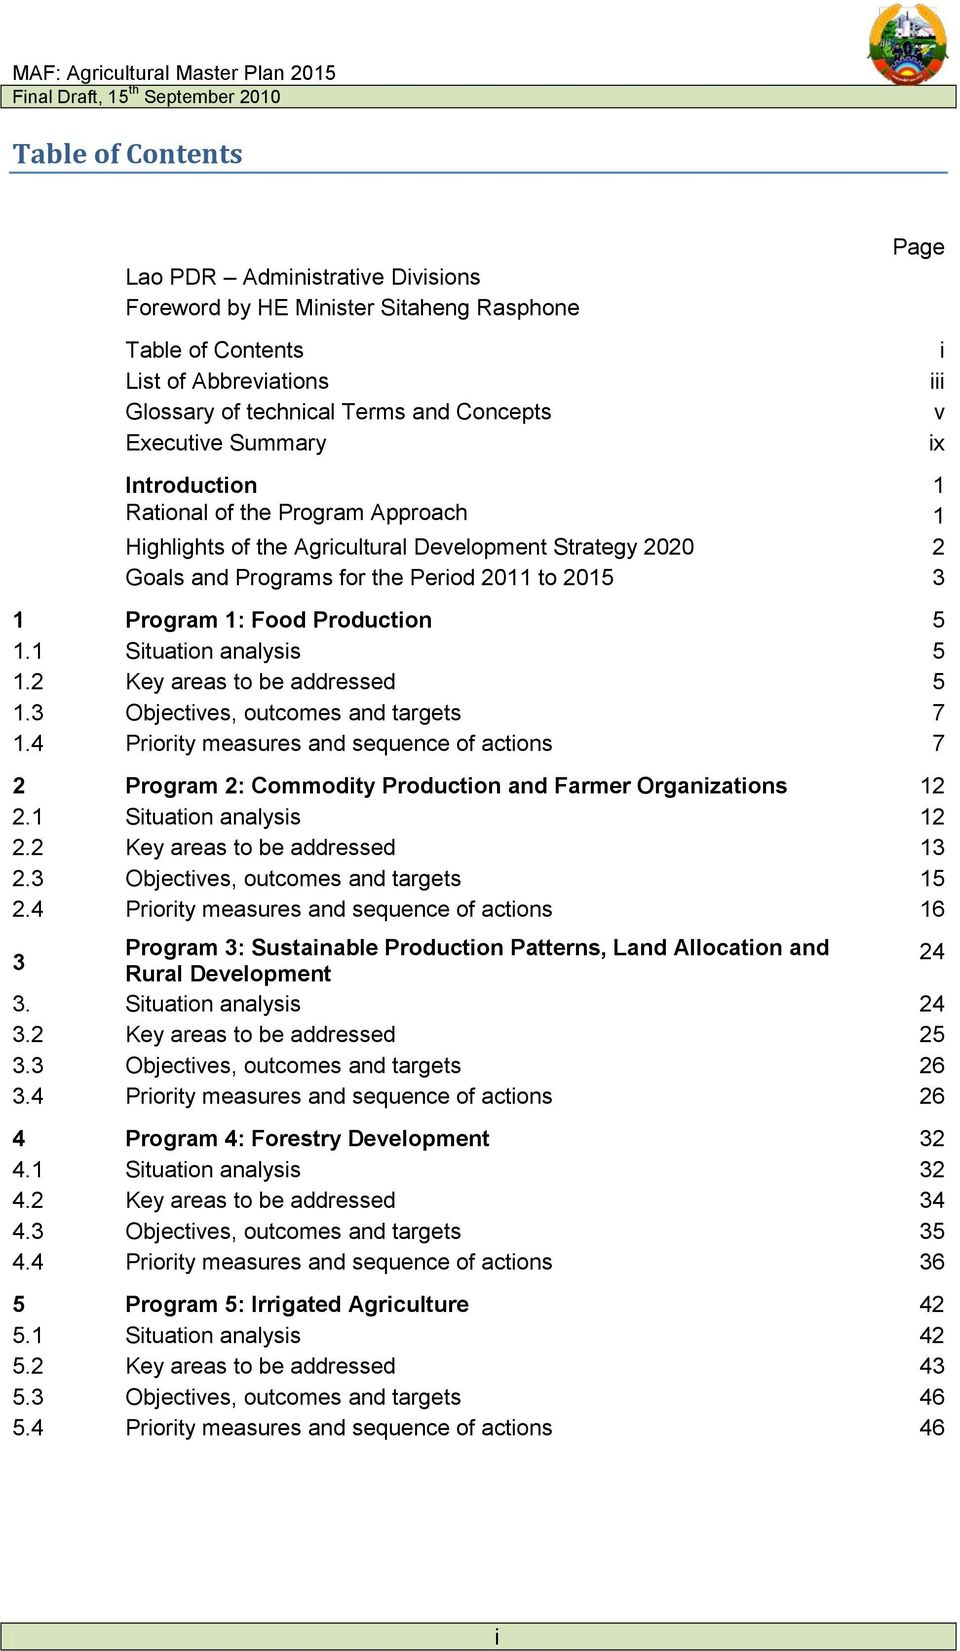 1 Situation analysis 5 1.2 Key areas to be addressed 5 1.3 Objectives, outcomes and targets 7 1.